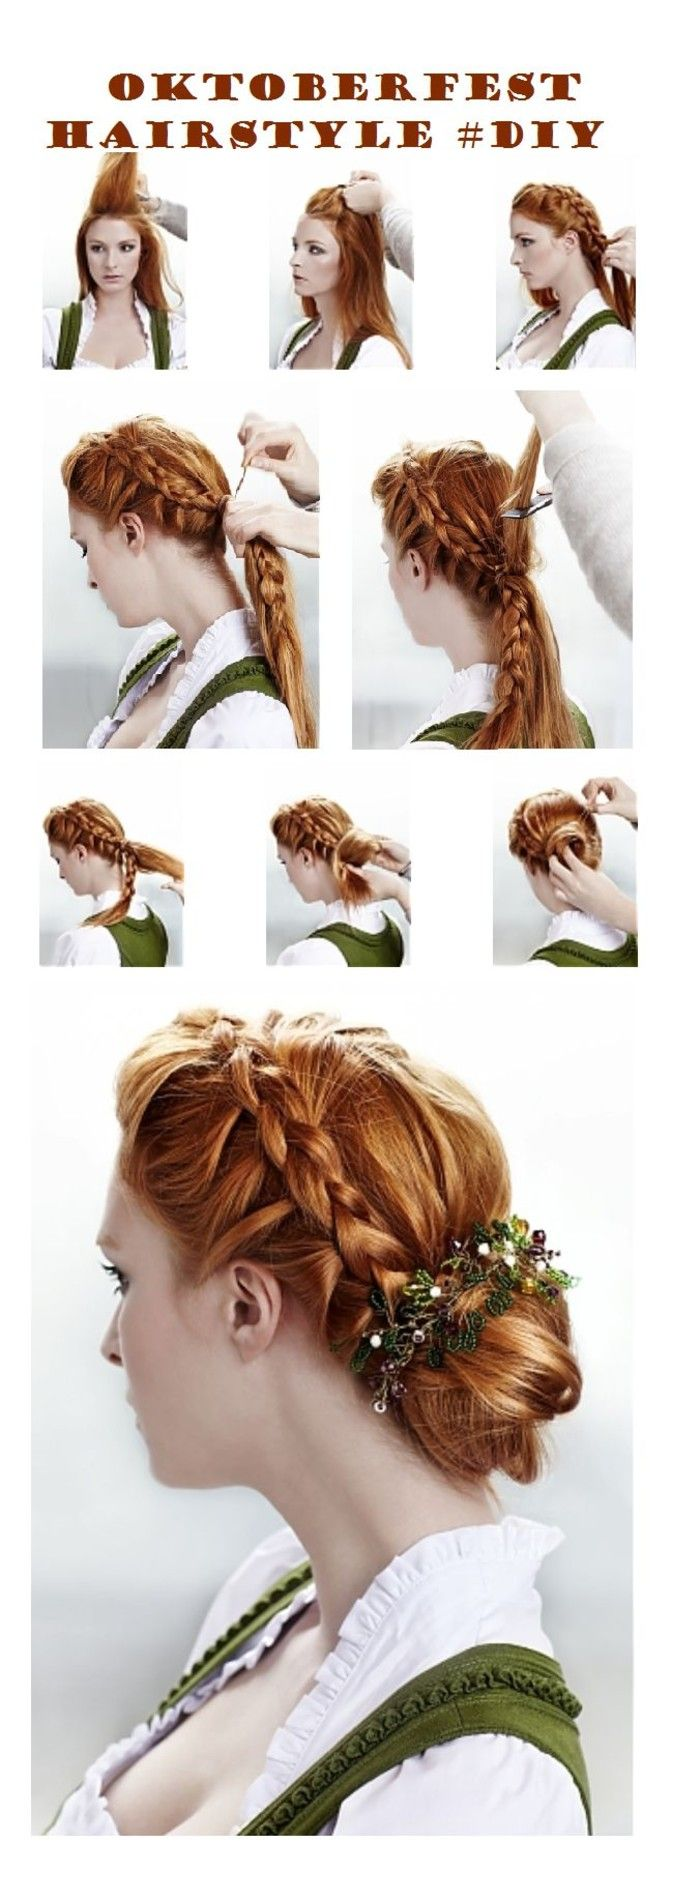 oktoberfest traditional-inspired hairstyle diy   hair in